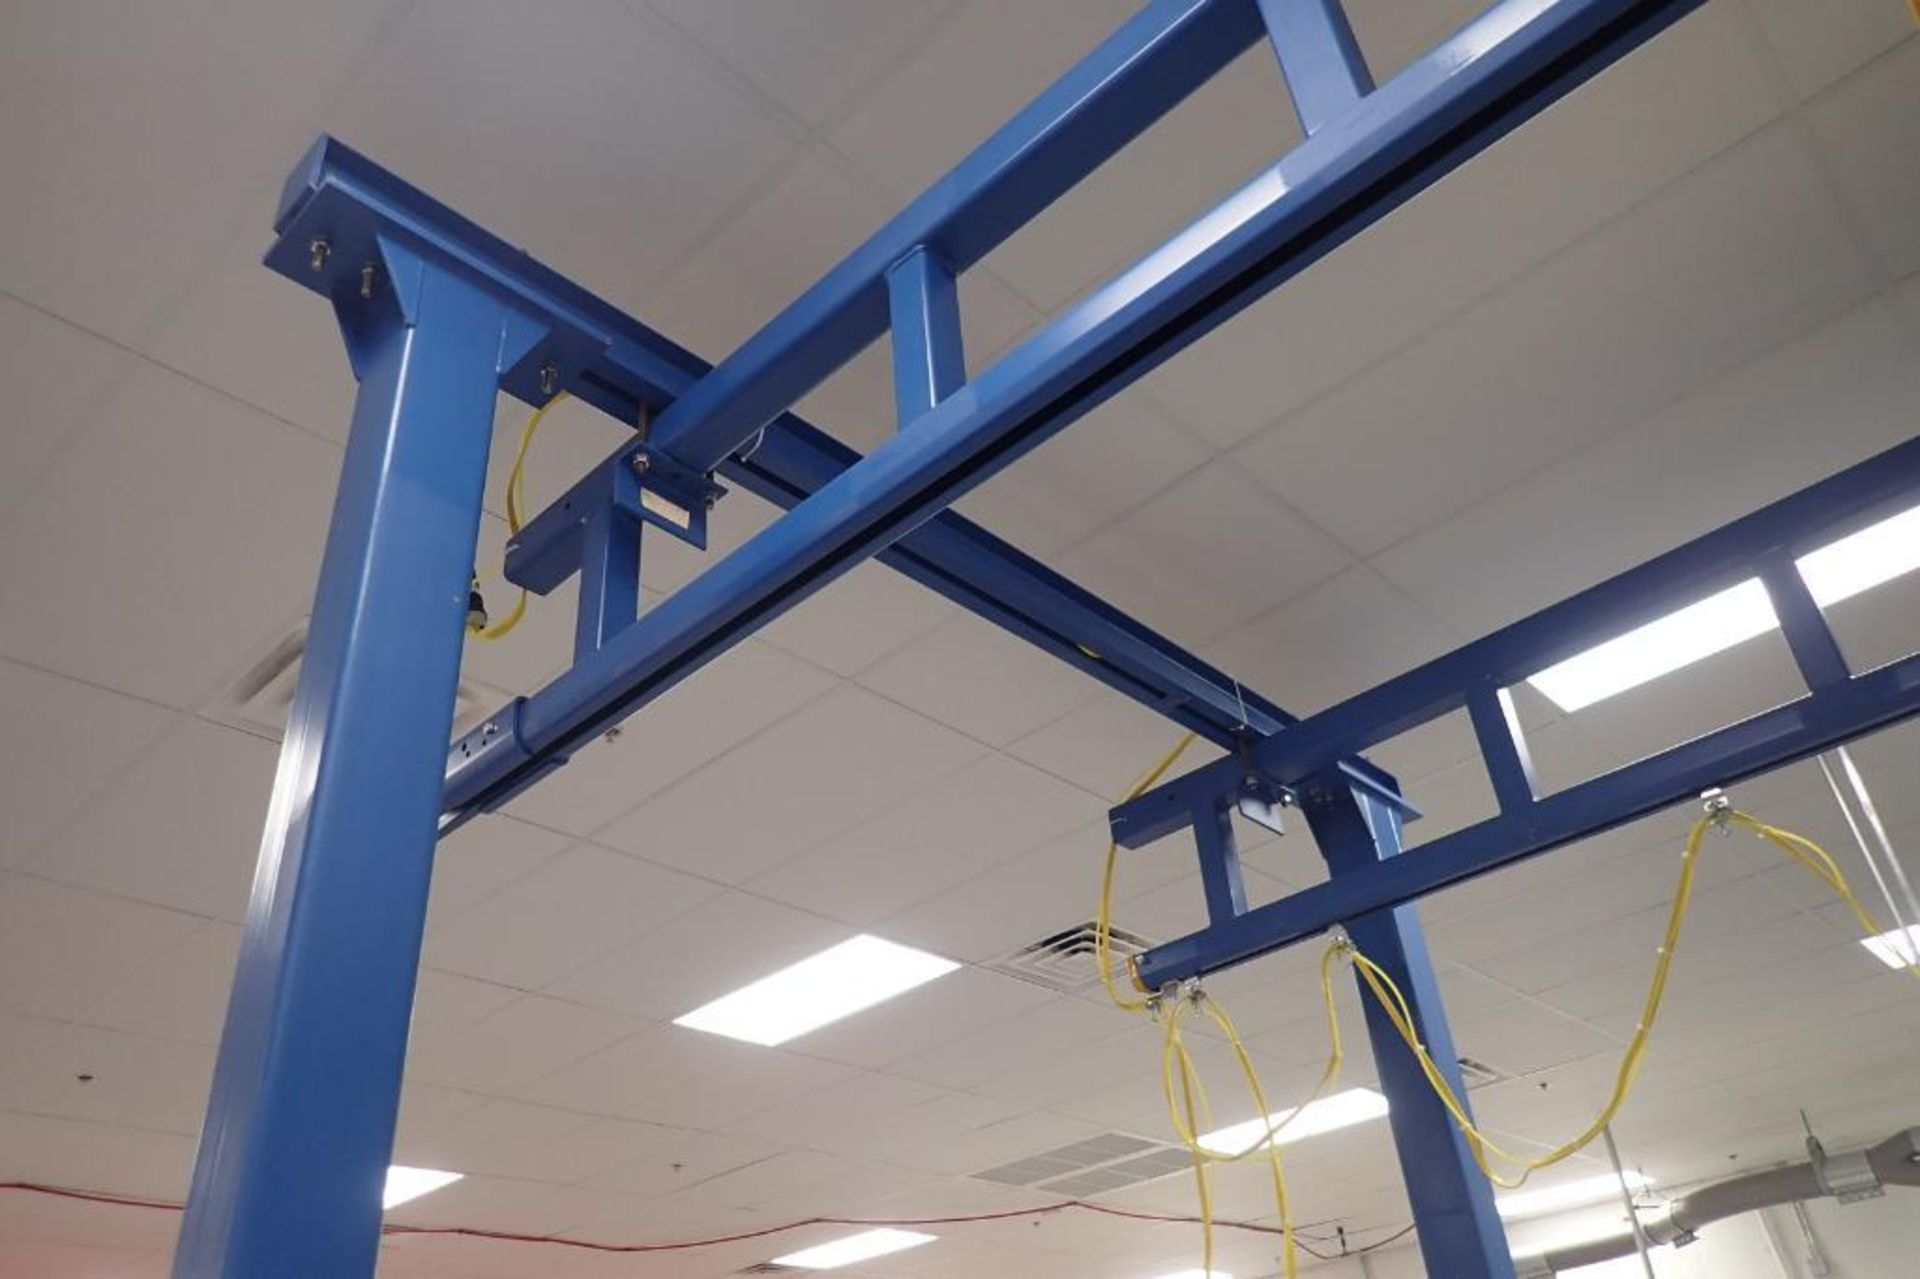 Lot 9 - FHS overhead crane system, 30 ft. long x 152 in. tall x 126 in. wide, (2) manual slide 2000 lb